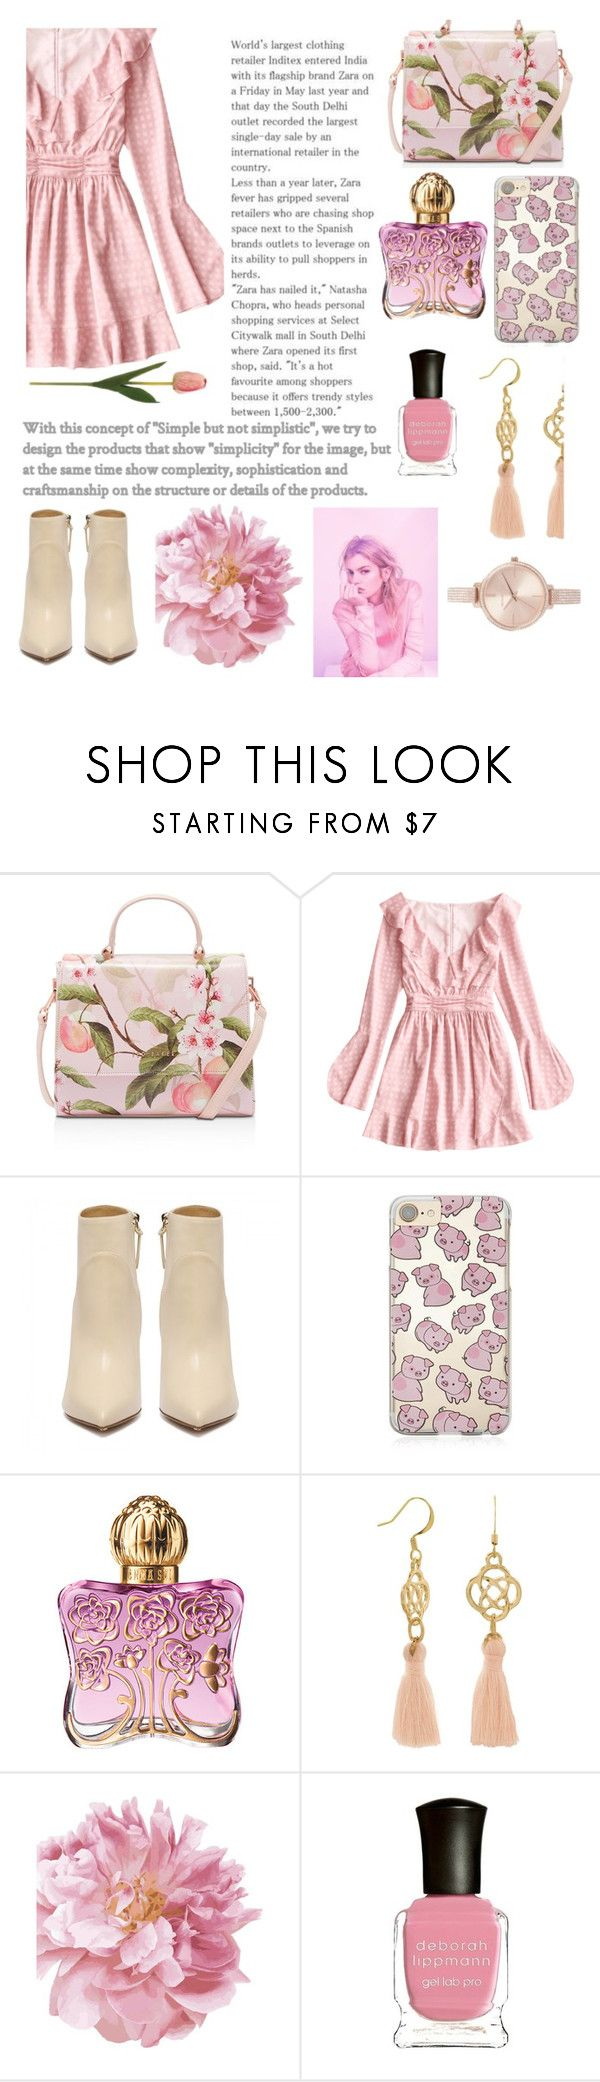 """""""This Spring wear pink"""" by georgianaroberta ❤ liked on Polyvore featuring Ted Baker, Forever 21, Anna Sui, Deborah Lippmann and Michael Kors"""